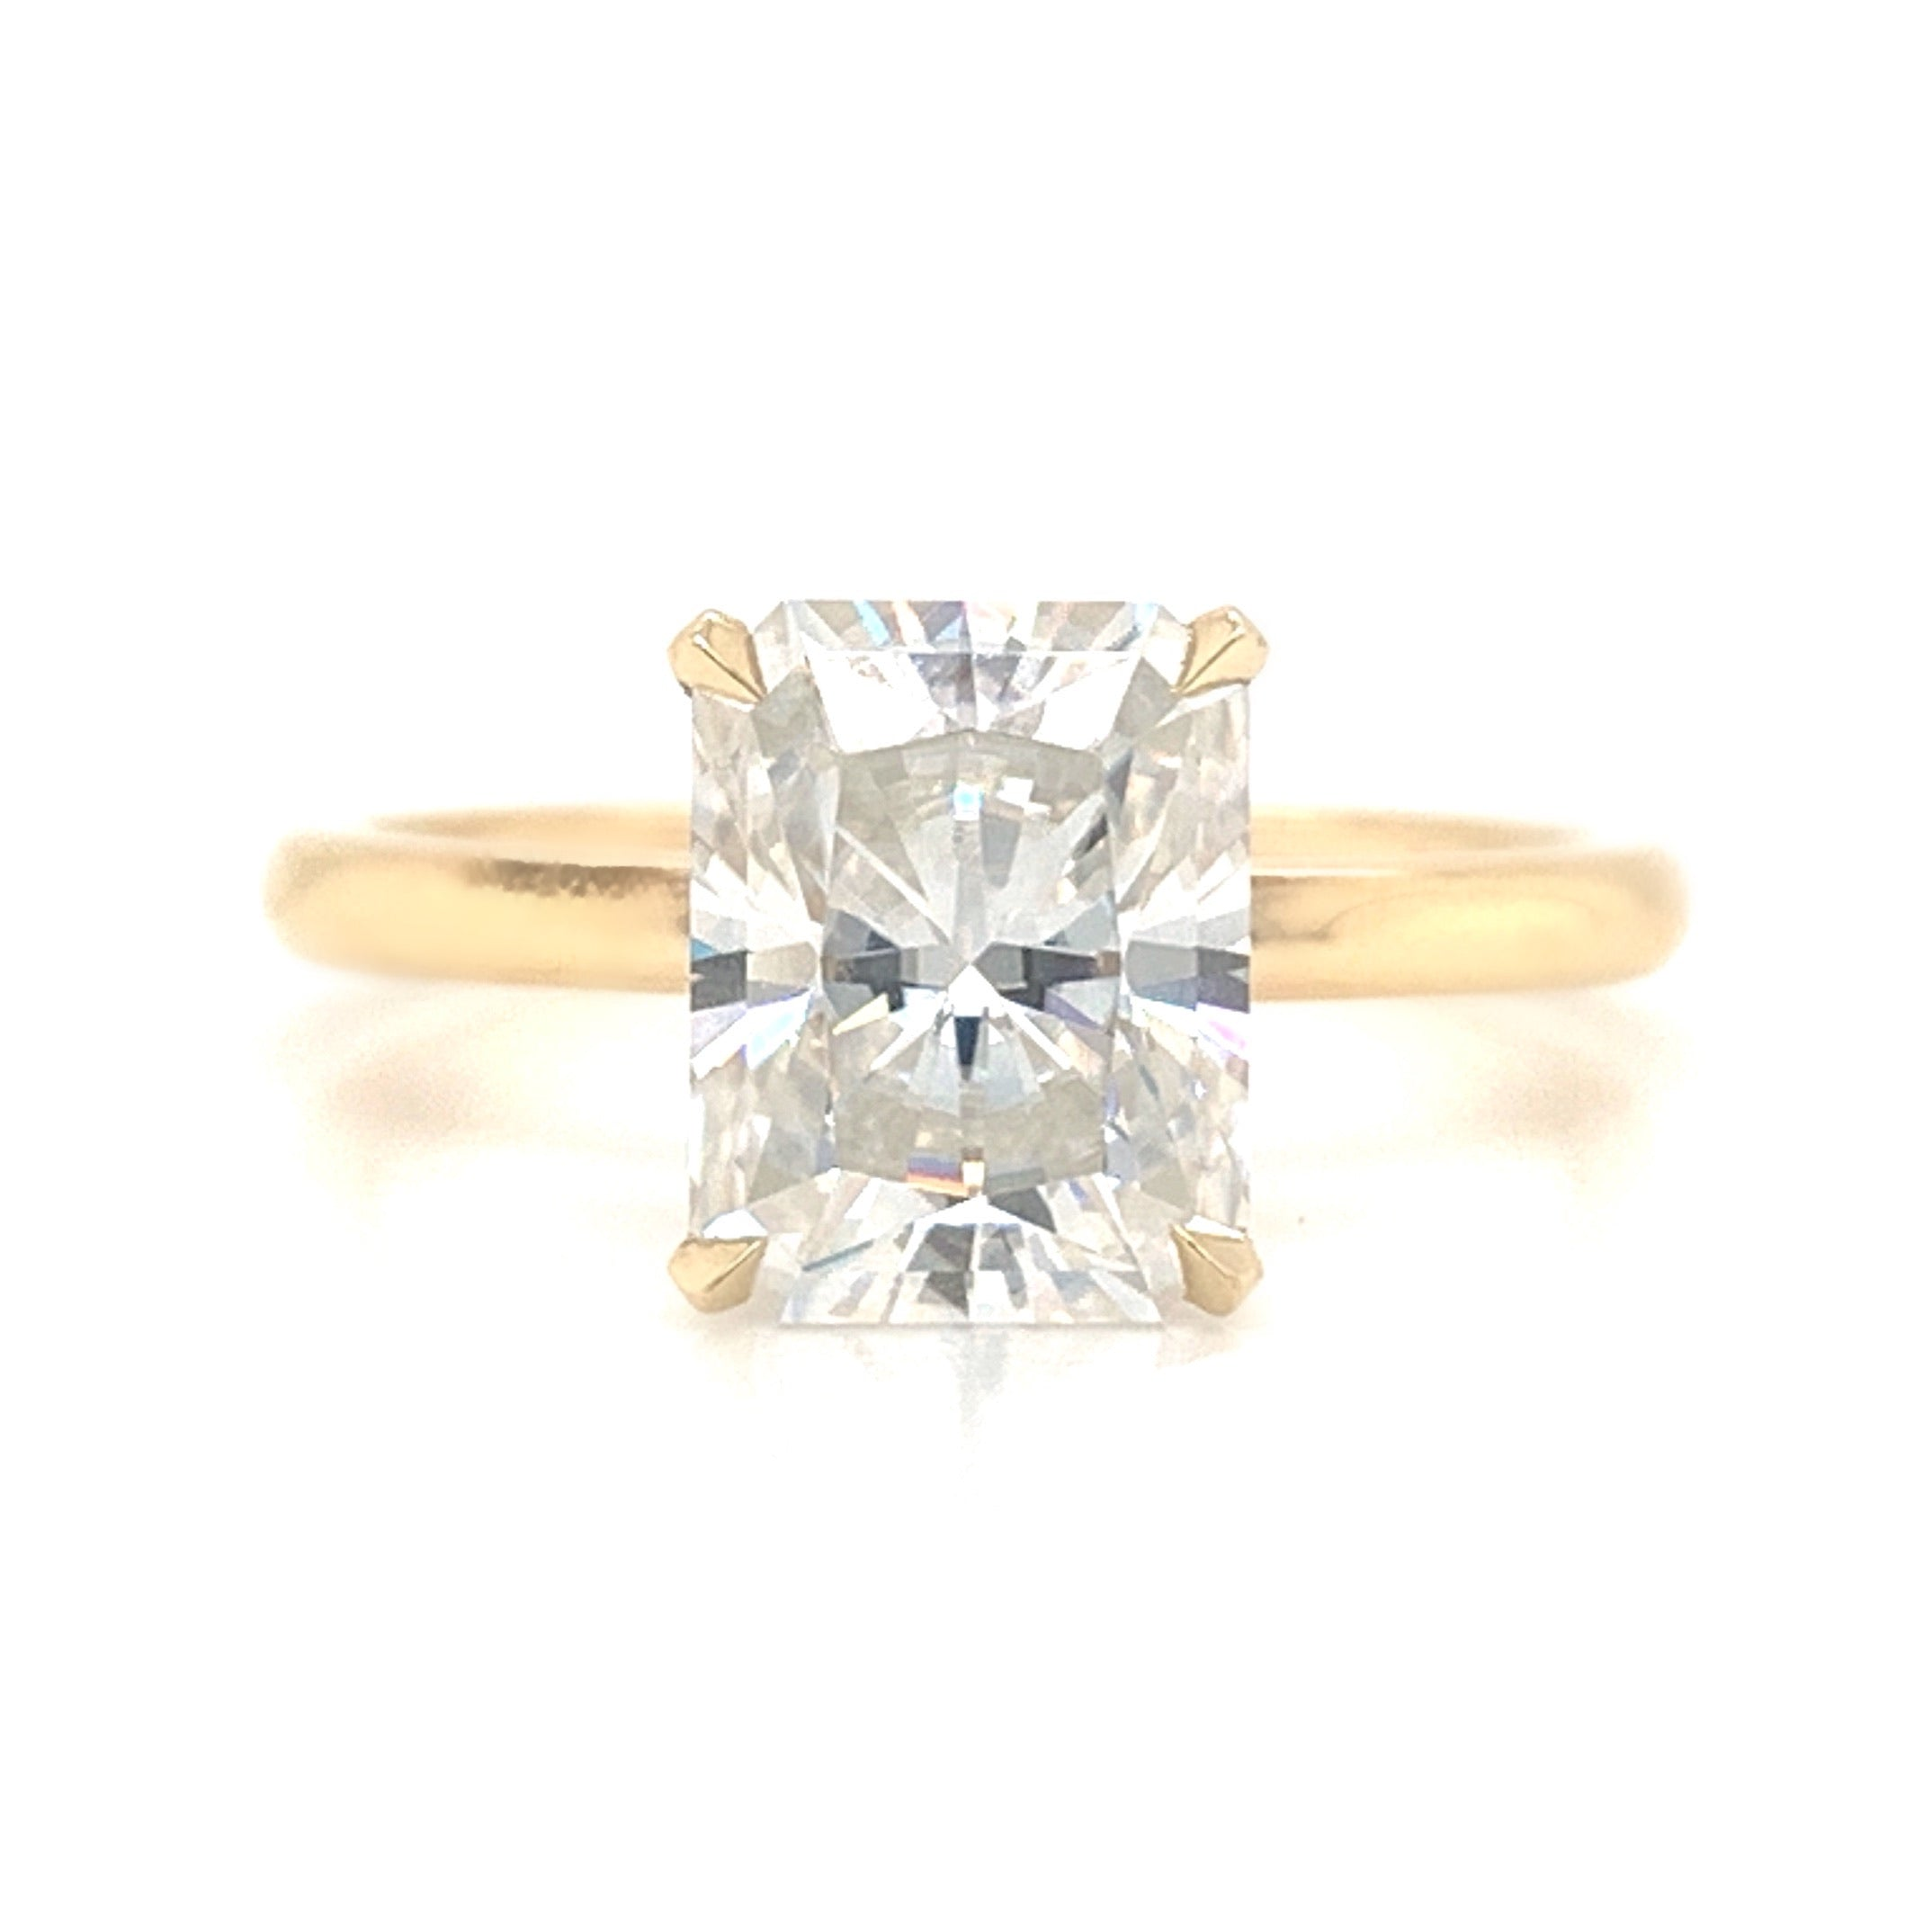 Radiant Cut Classic Delicate Solitaire Engagement Ring